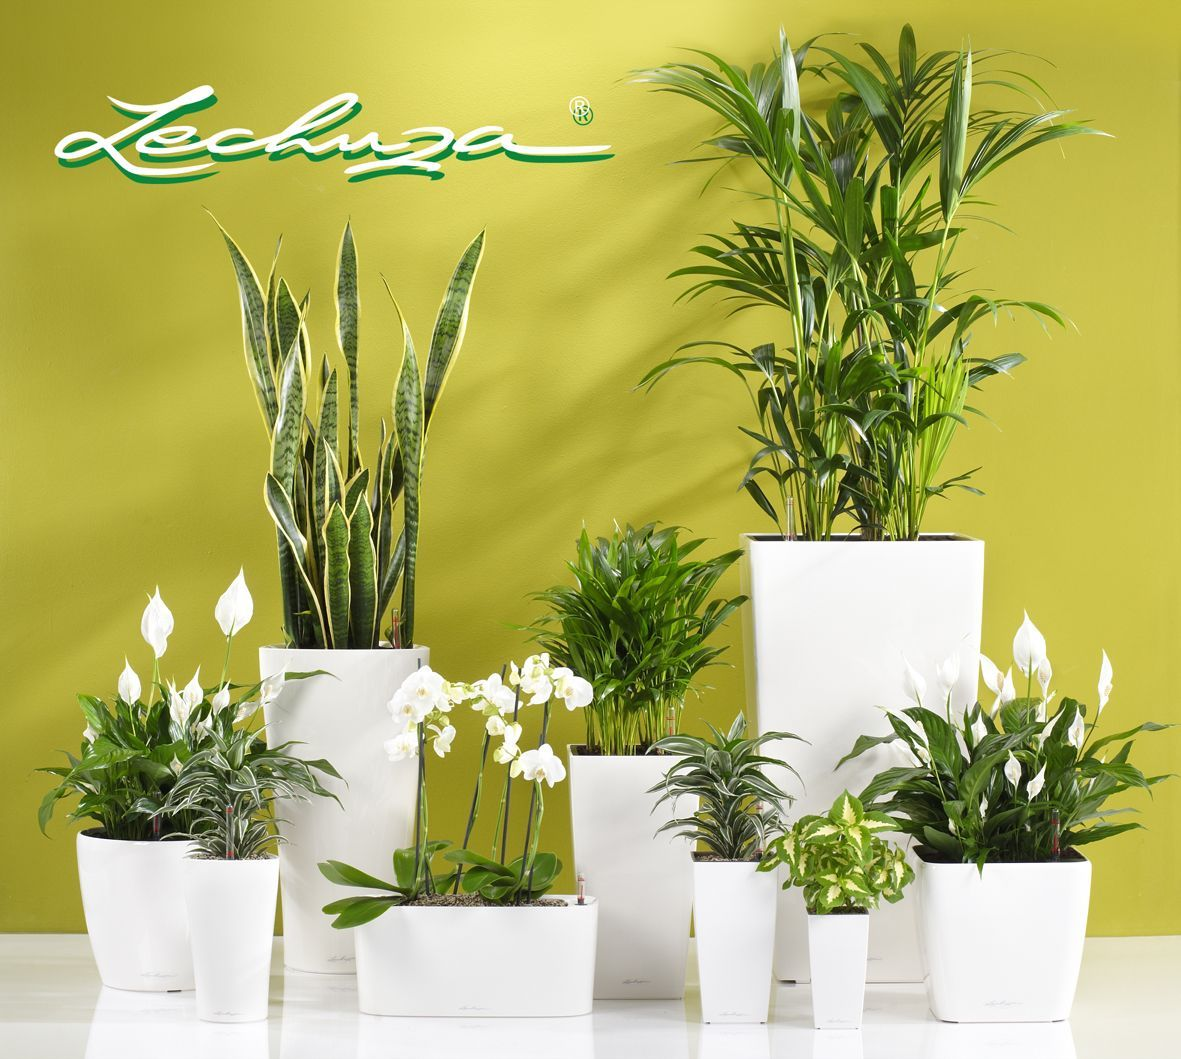 Self watering planter yes lechuza planters exclusively available at clima outdoor www - Lechuza self watering planter ...